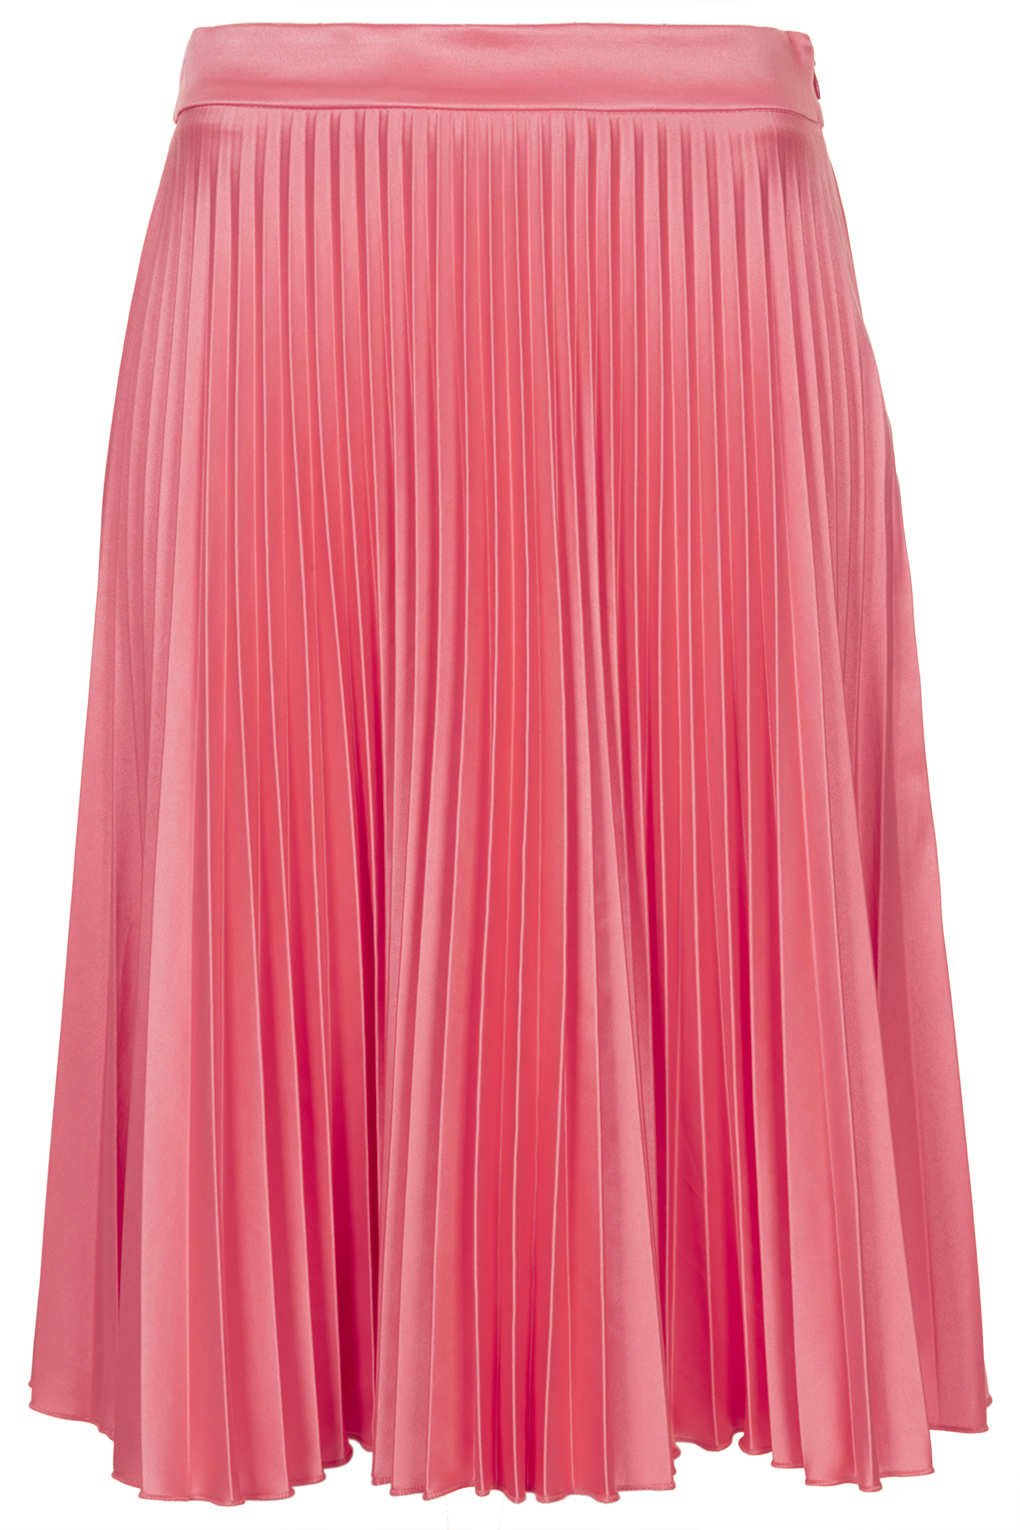 pink sunray pleat skirt from topshop on wanelo